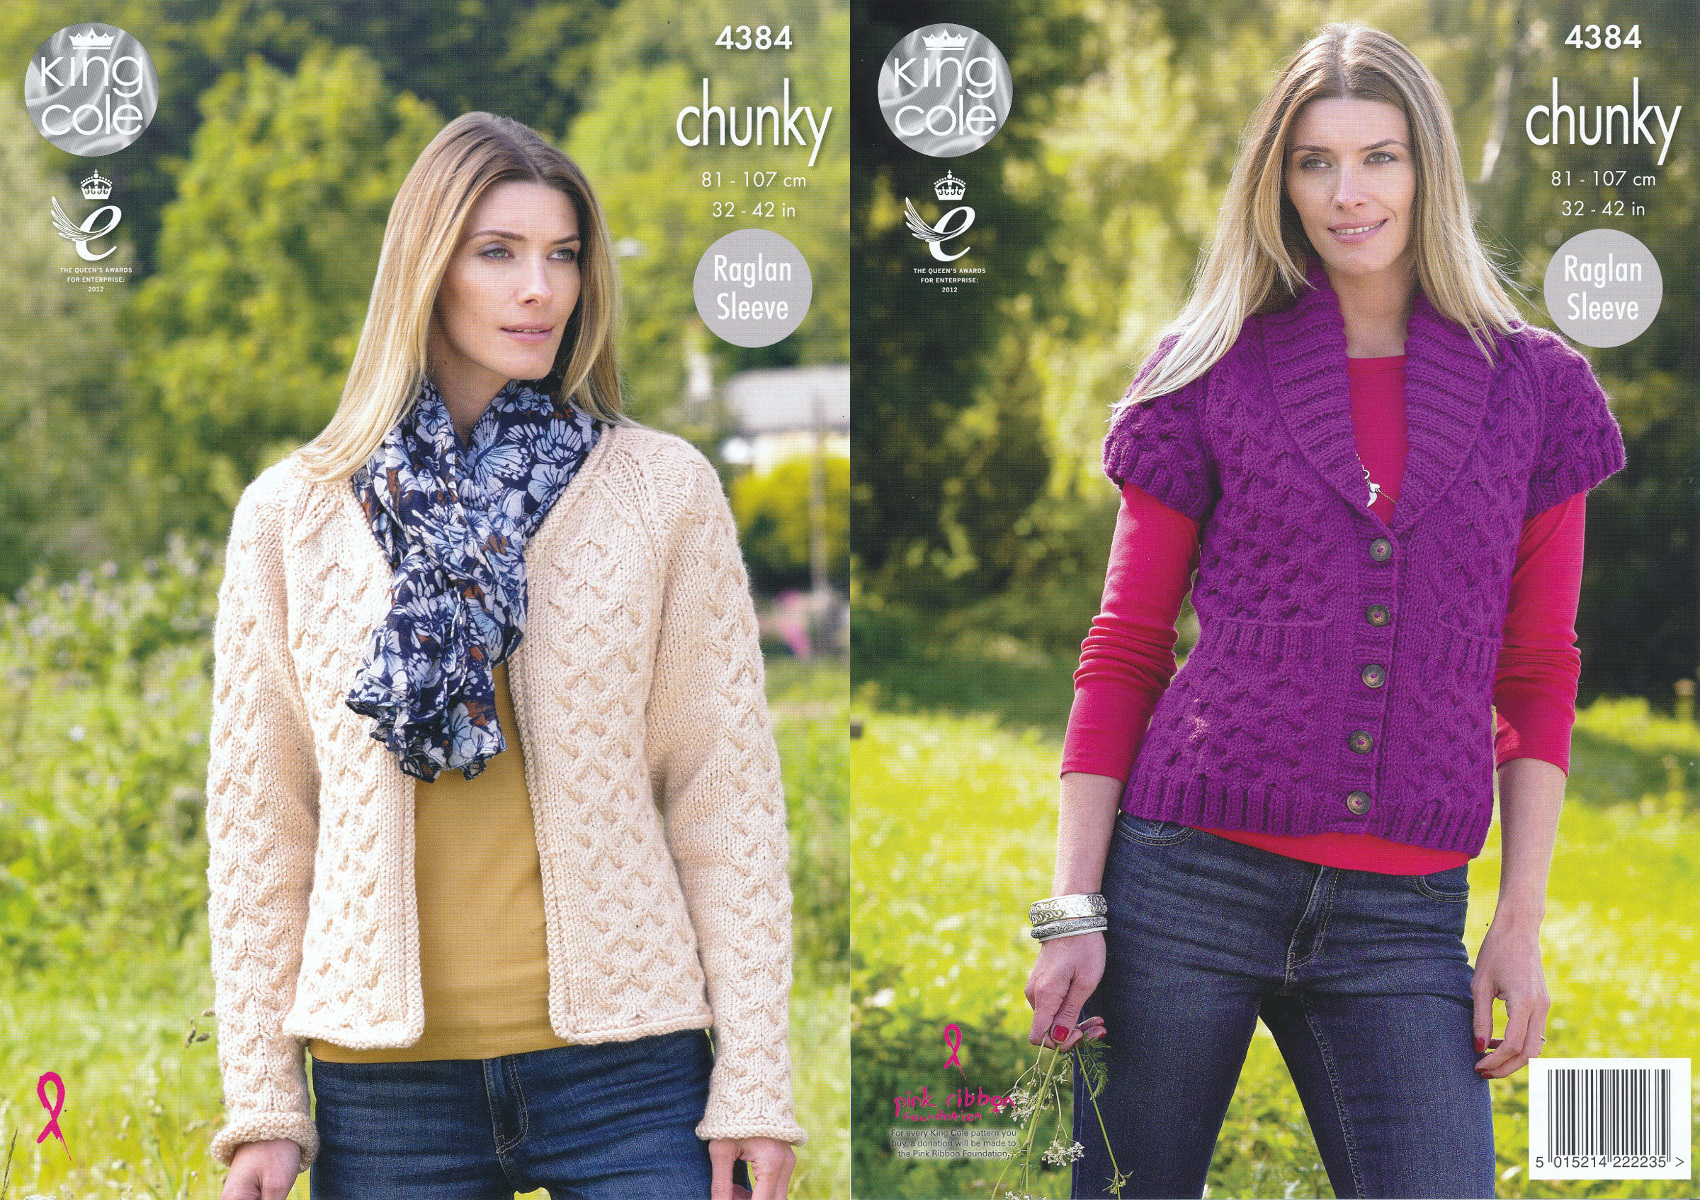 King cole ladies chunky knitting pattern raglan sleeve waistcoat king cole ladies chunky knitting pattern raglan sleeve waistcoat jacket 4384 bankloansurffo Gallery